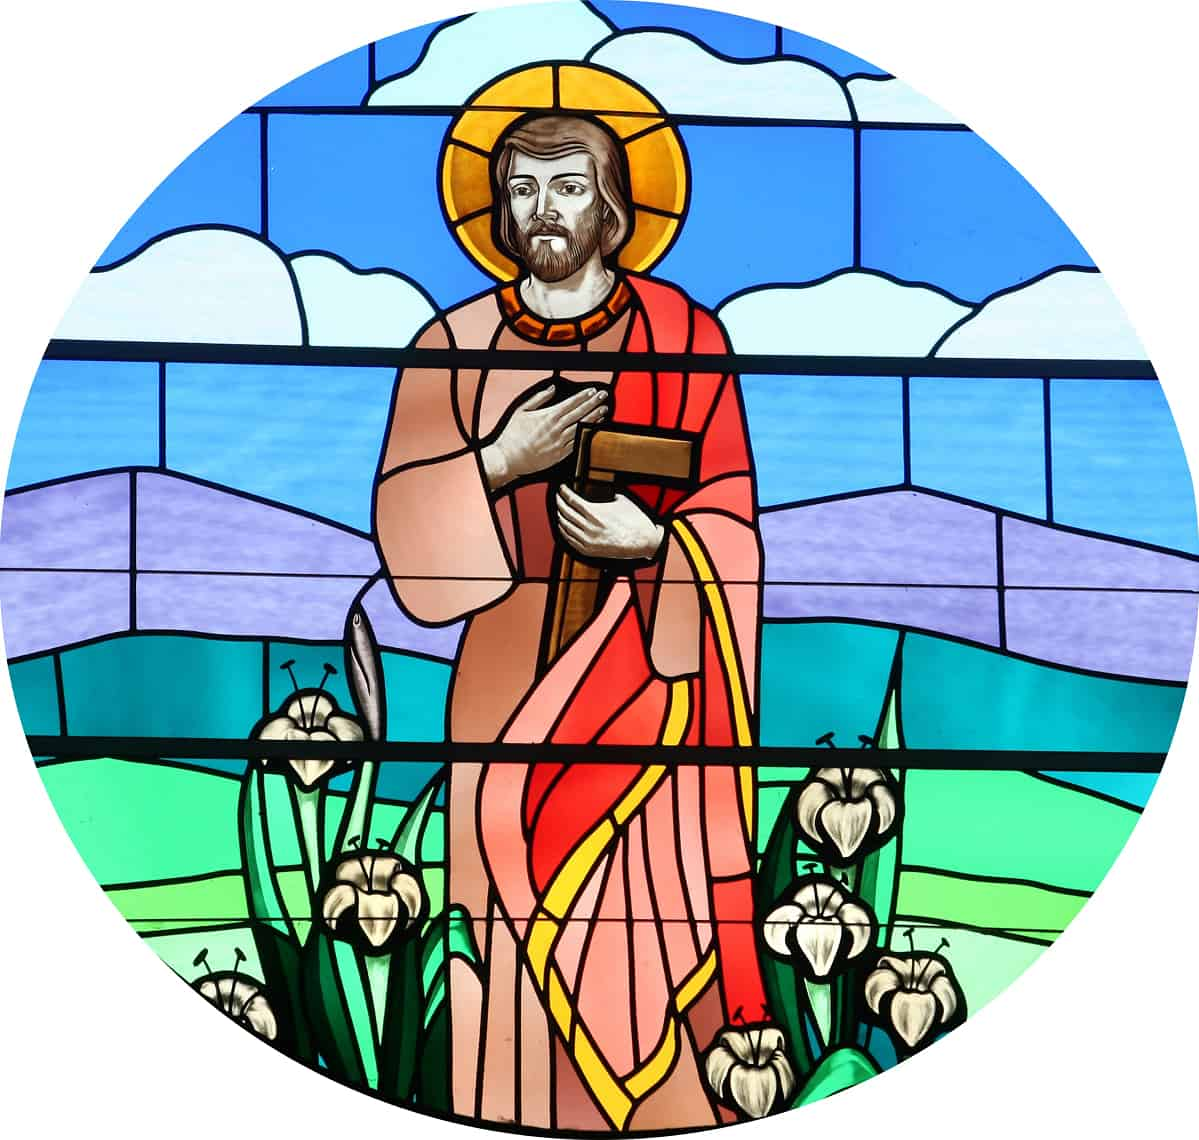 Church grants plenary indulgence for year of St. Joseph